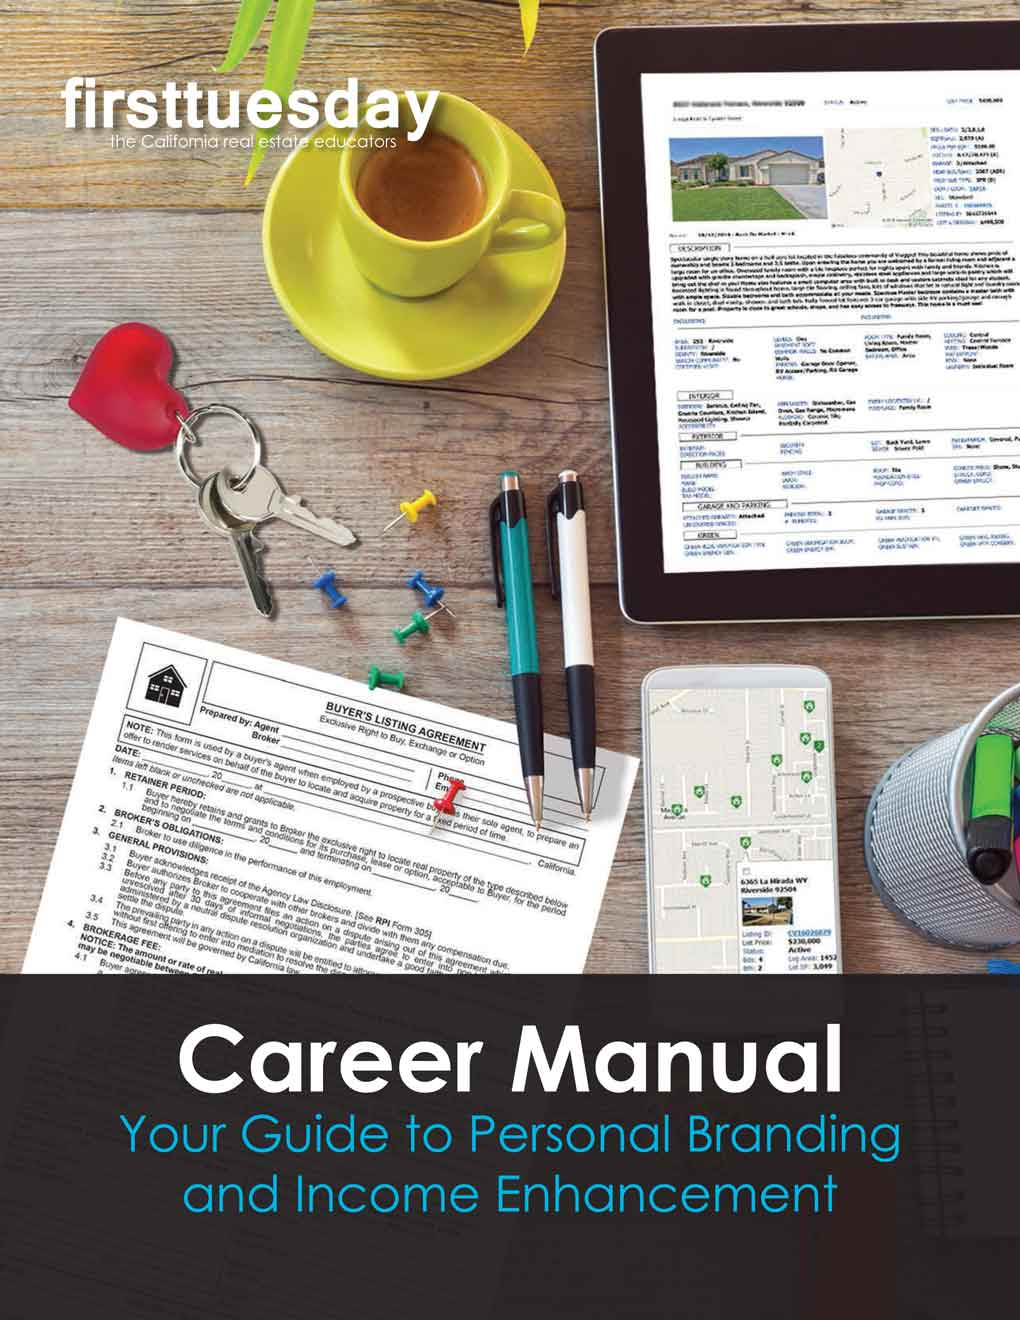 careermanual_cover